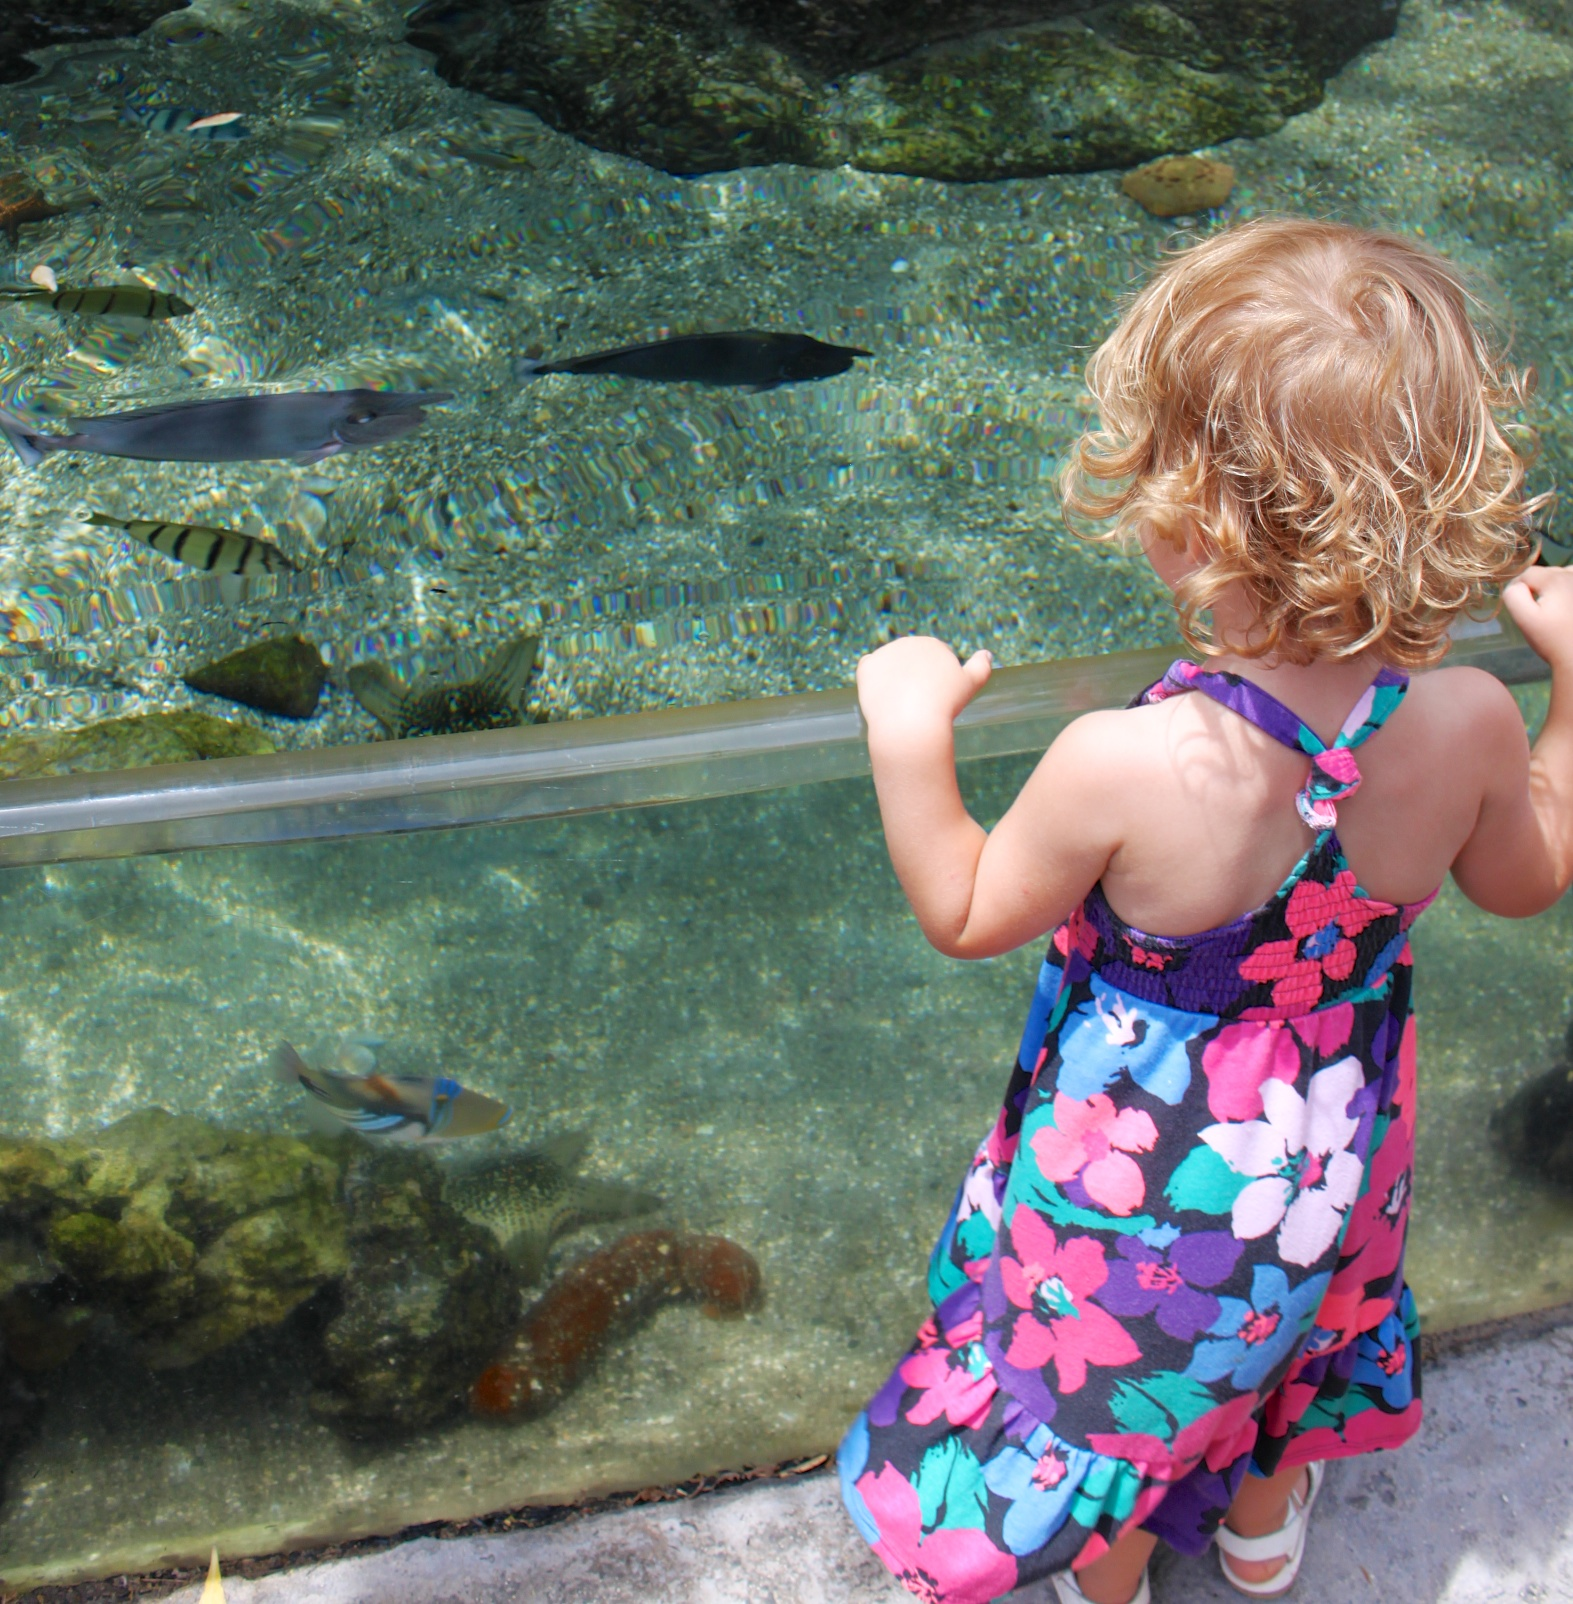 M loves the fish at the Maui Ocean Center. But she has to watch out these fish jump!